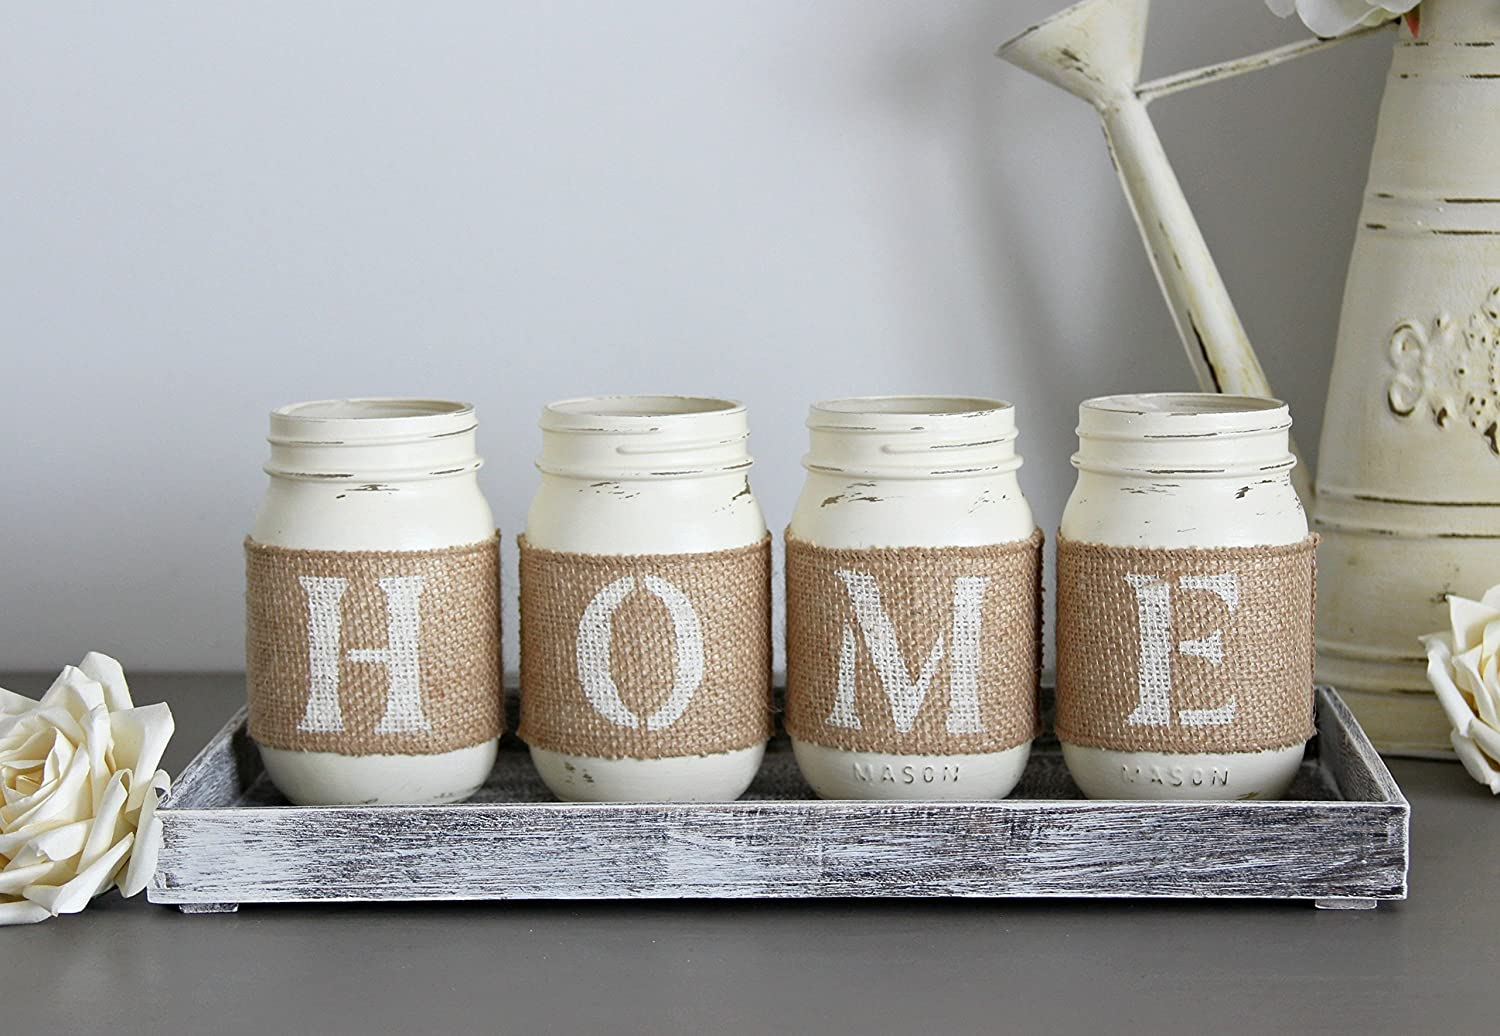 Amazon.com: Rustic Decorative Jars with Wooden Tray as a ...